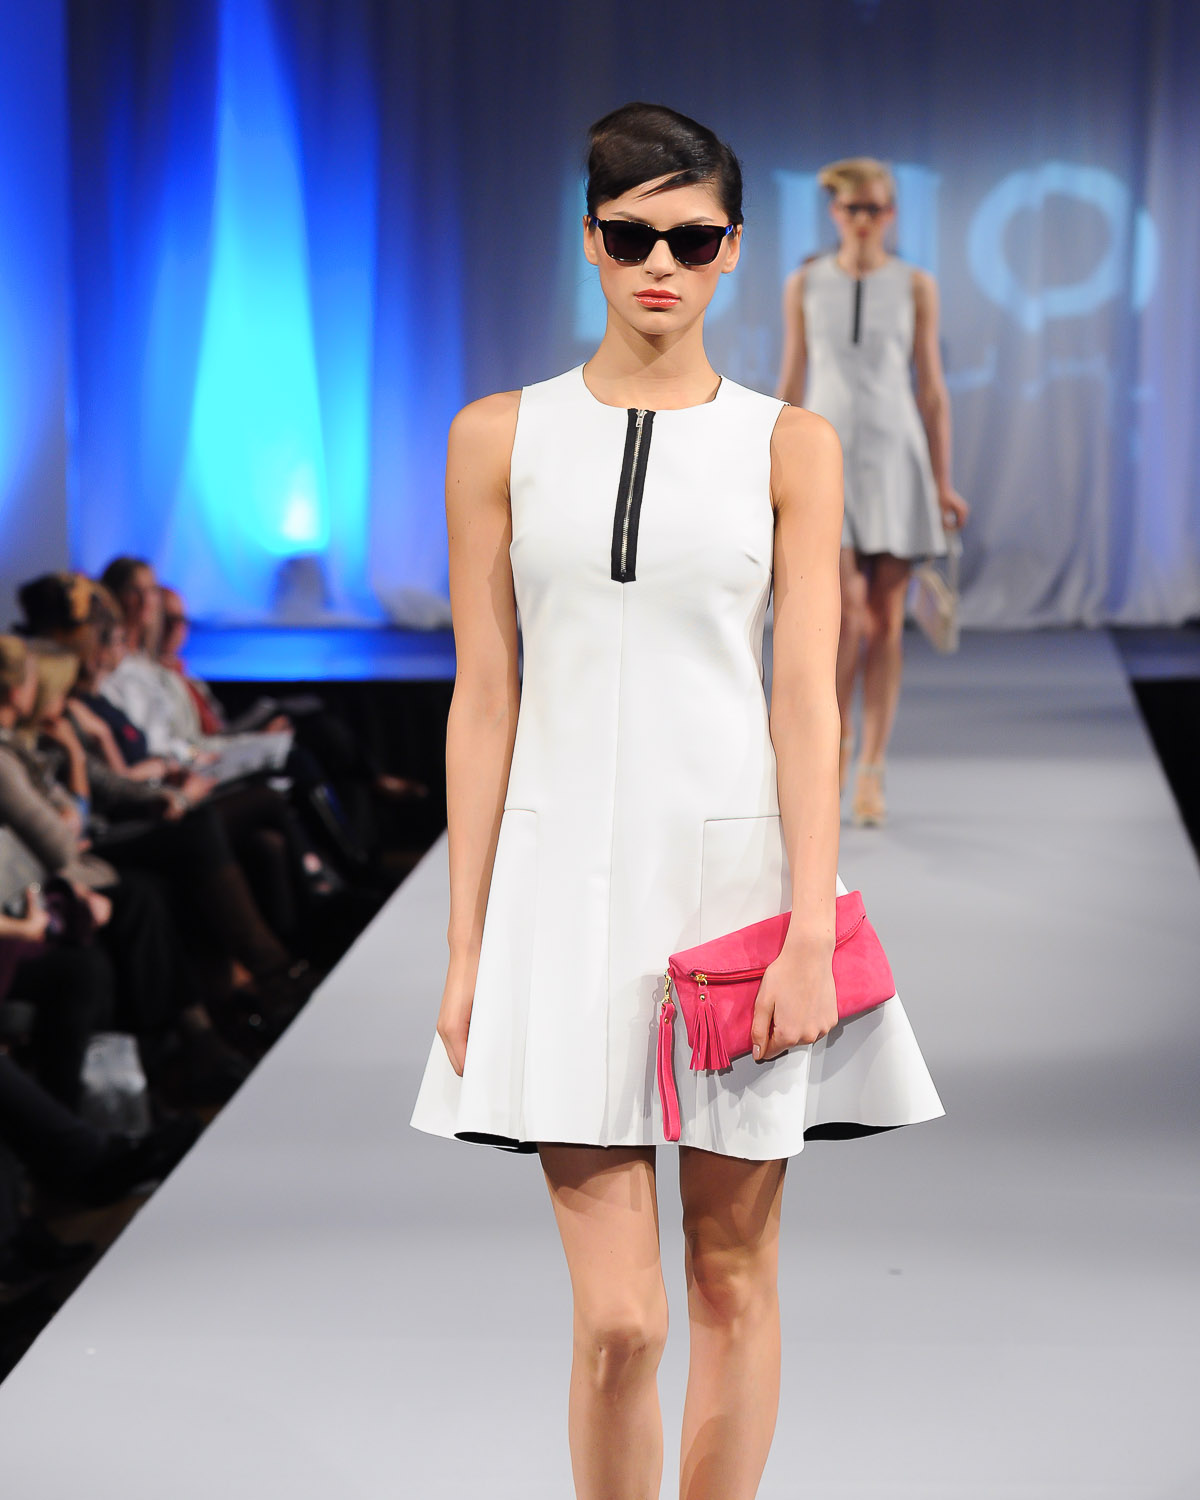 bath-in-fashion-spring-summer-12.jpg